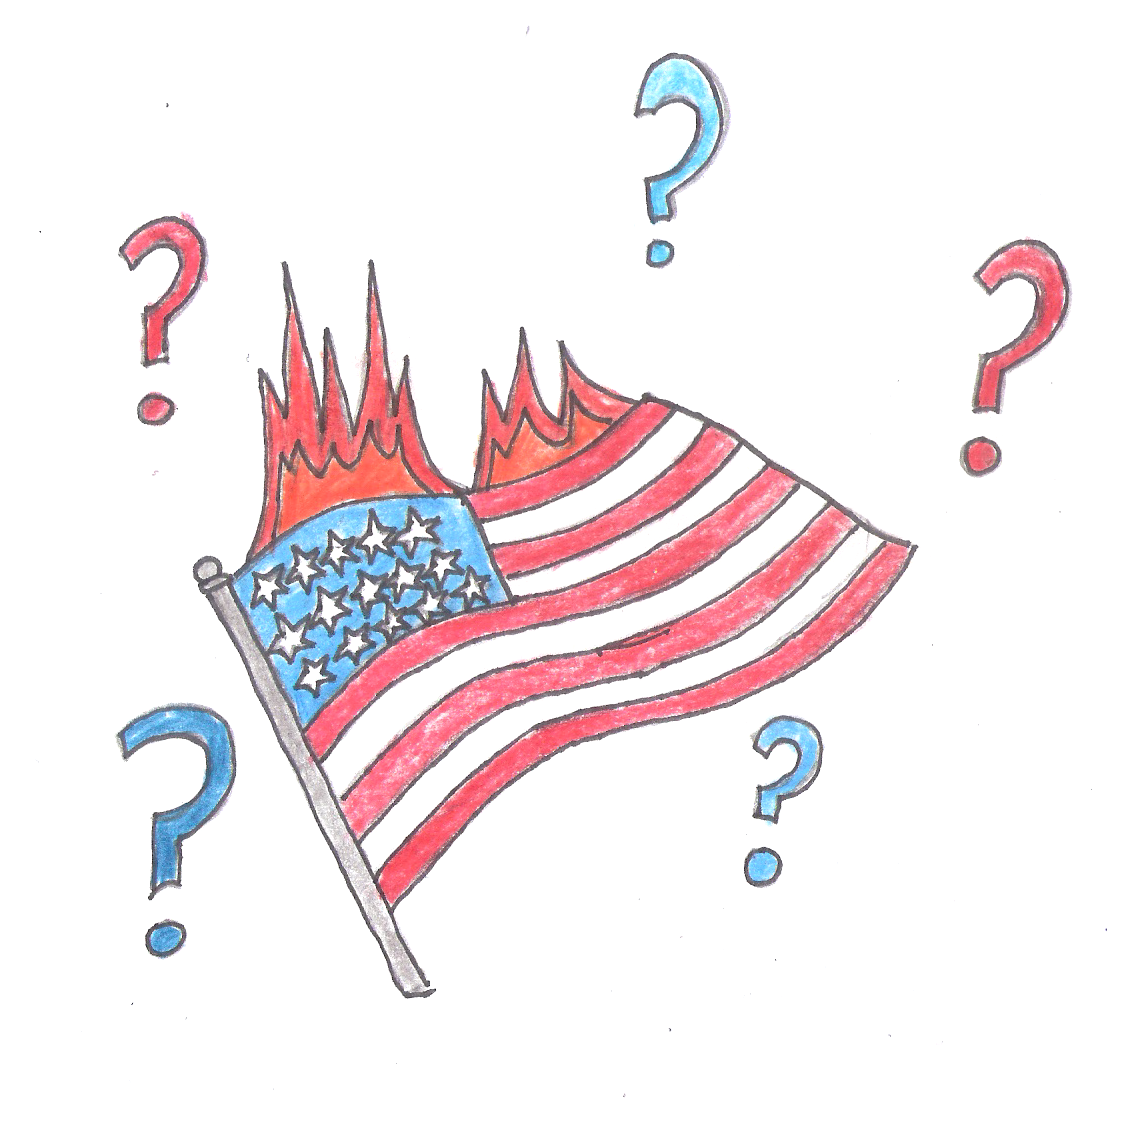 Should the flag be burned in protest?